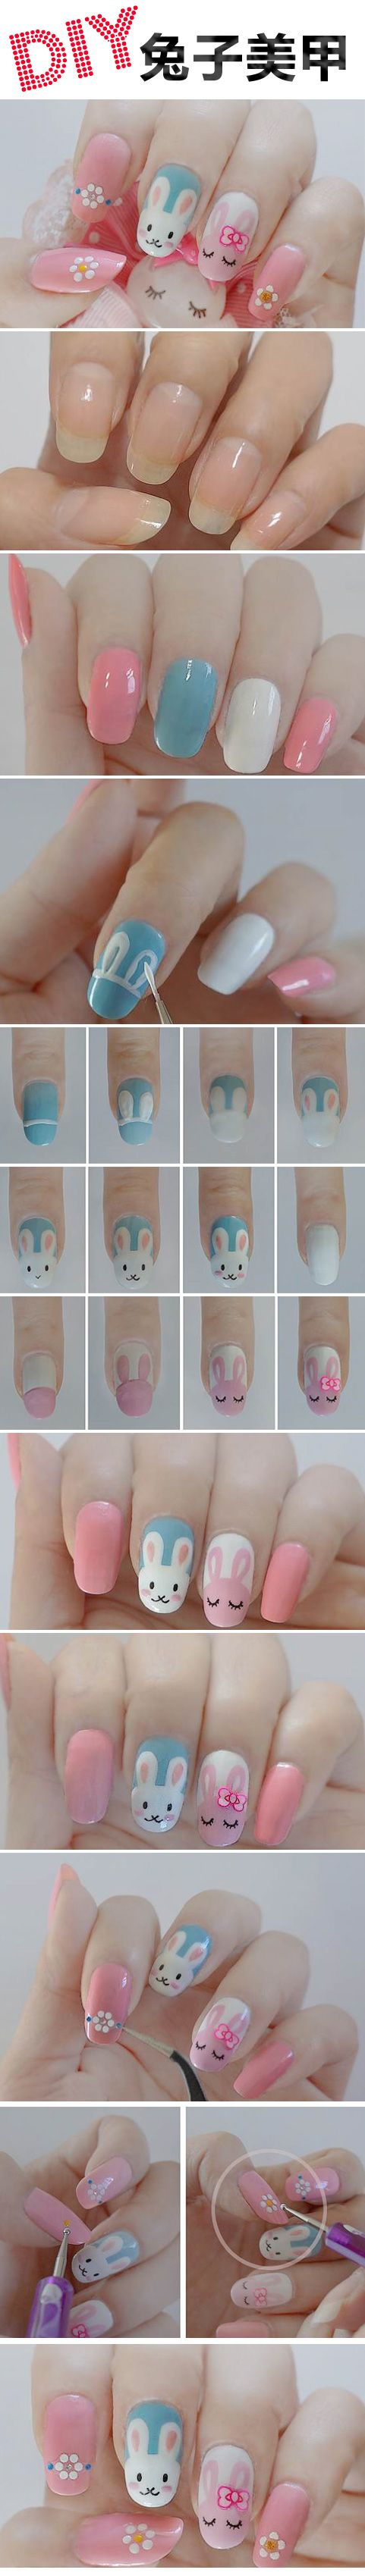 15 Amazing And Useful Nails Tutorials, DIY Cute Rabbit Nail Design easter!